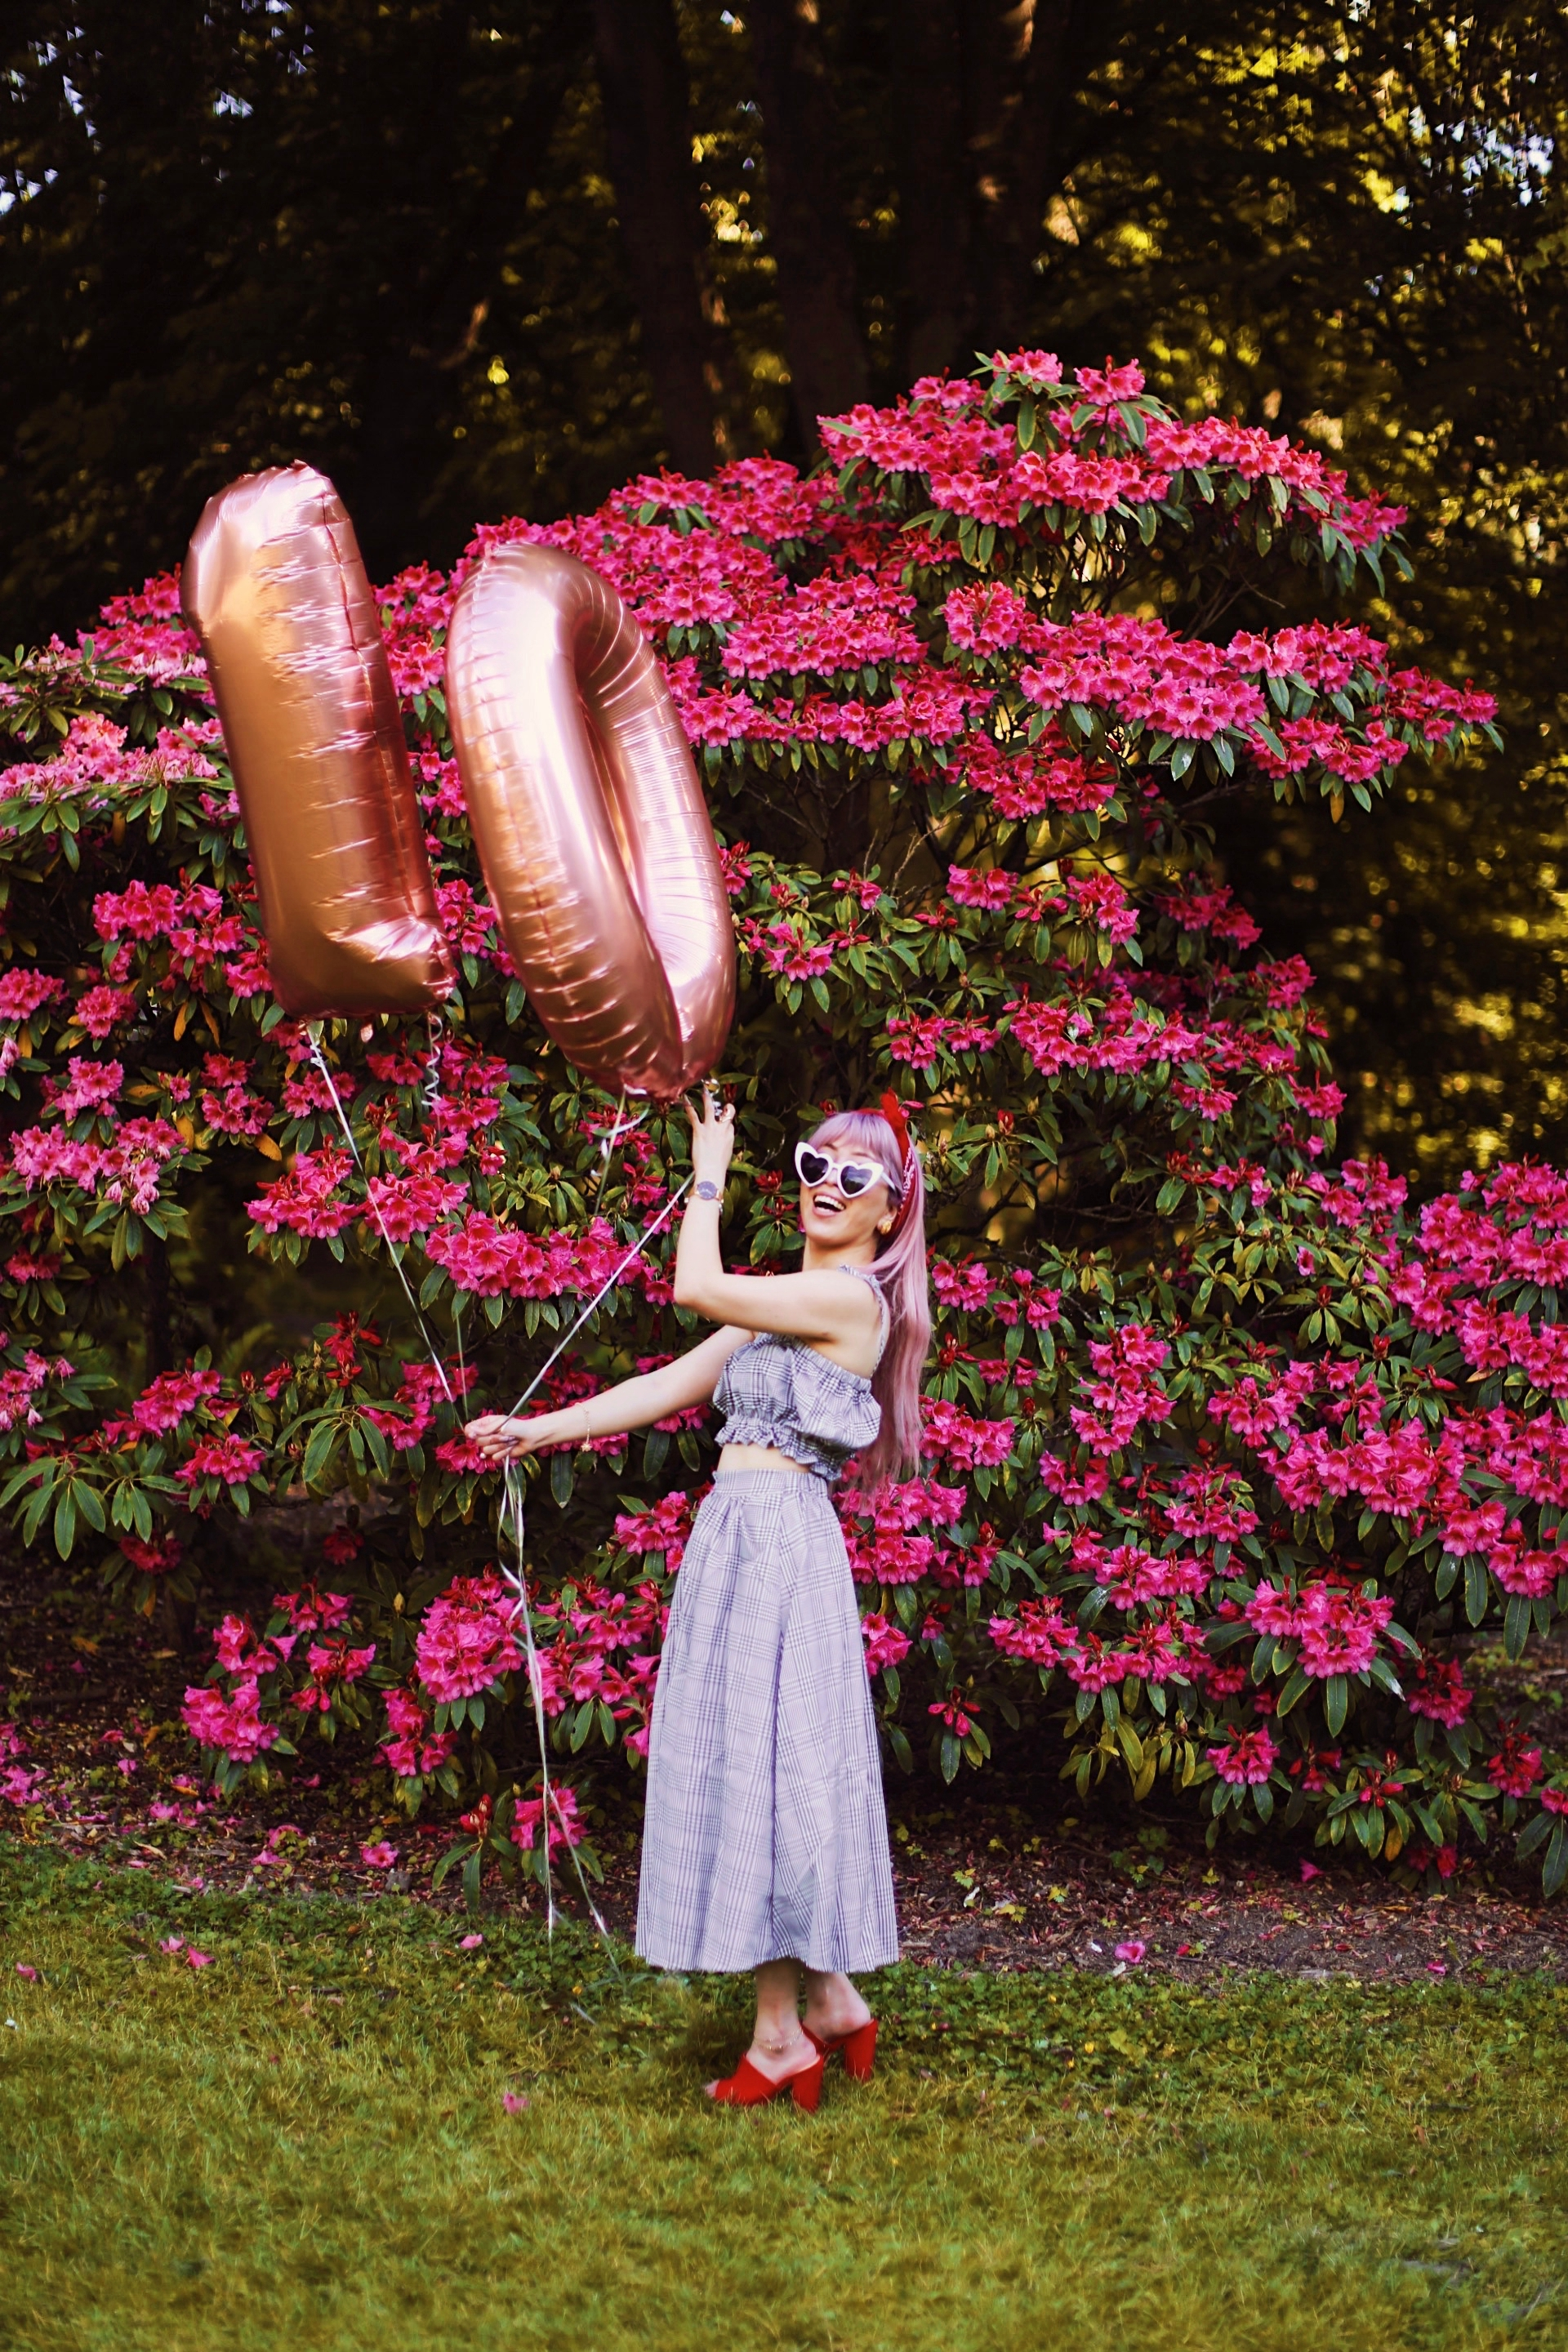 Aika's Love Closet-Seattle Style Life Style Blogger-Japanese-10 Year Anniversary-living in America-what I've learned from Living Abroad-life lessons-pink hair-zero uv heart sunglasses-rose gold balloons-smile 8